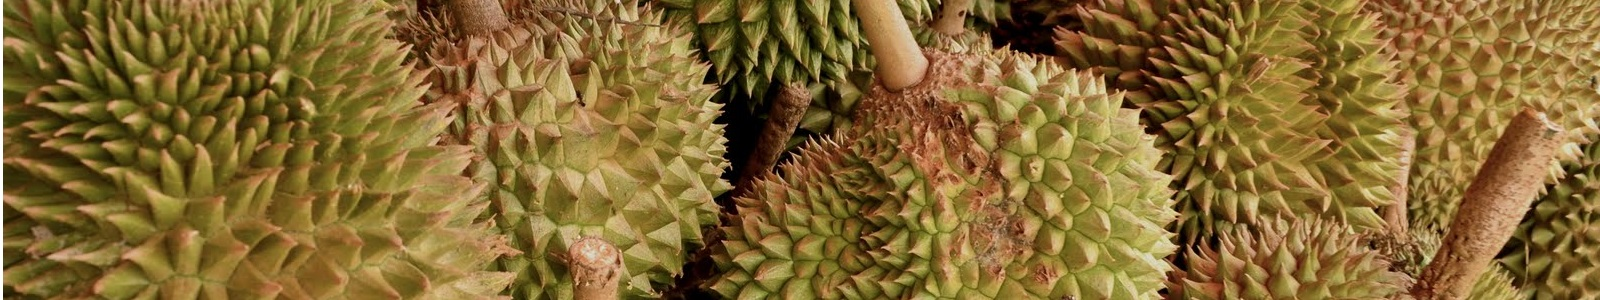 Musang King Durian Driving up Prices in China